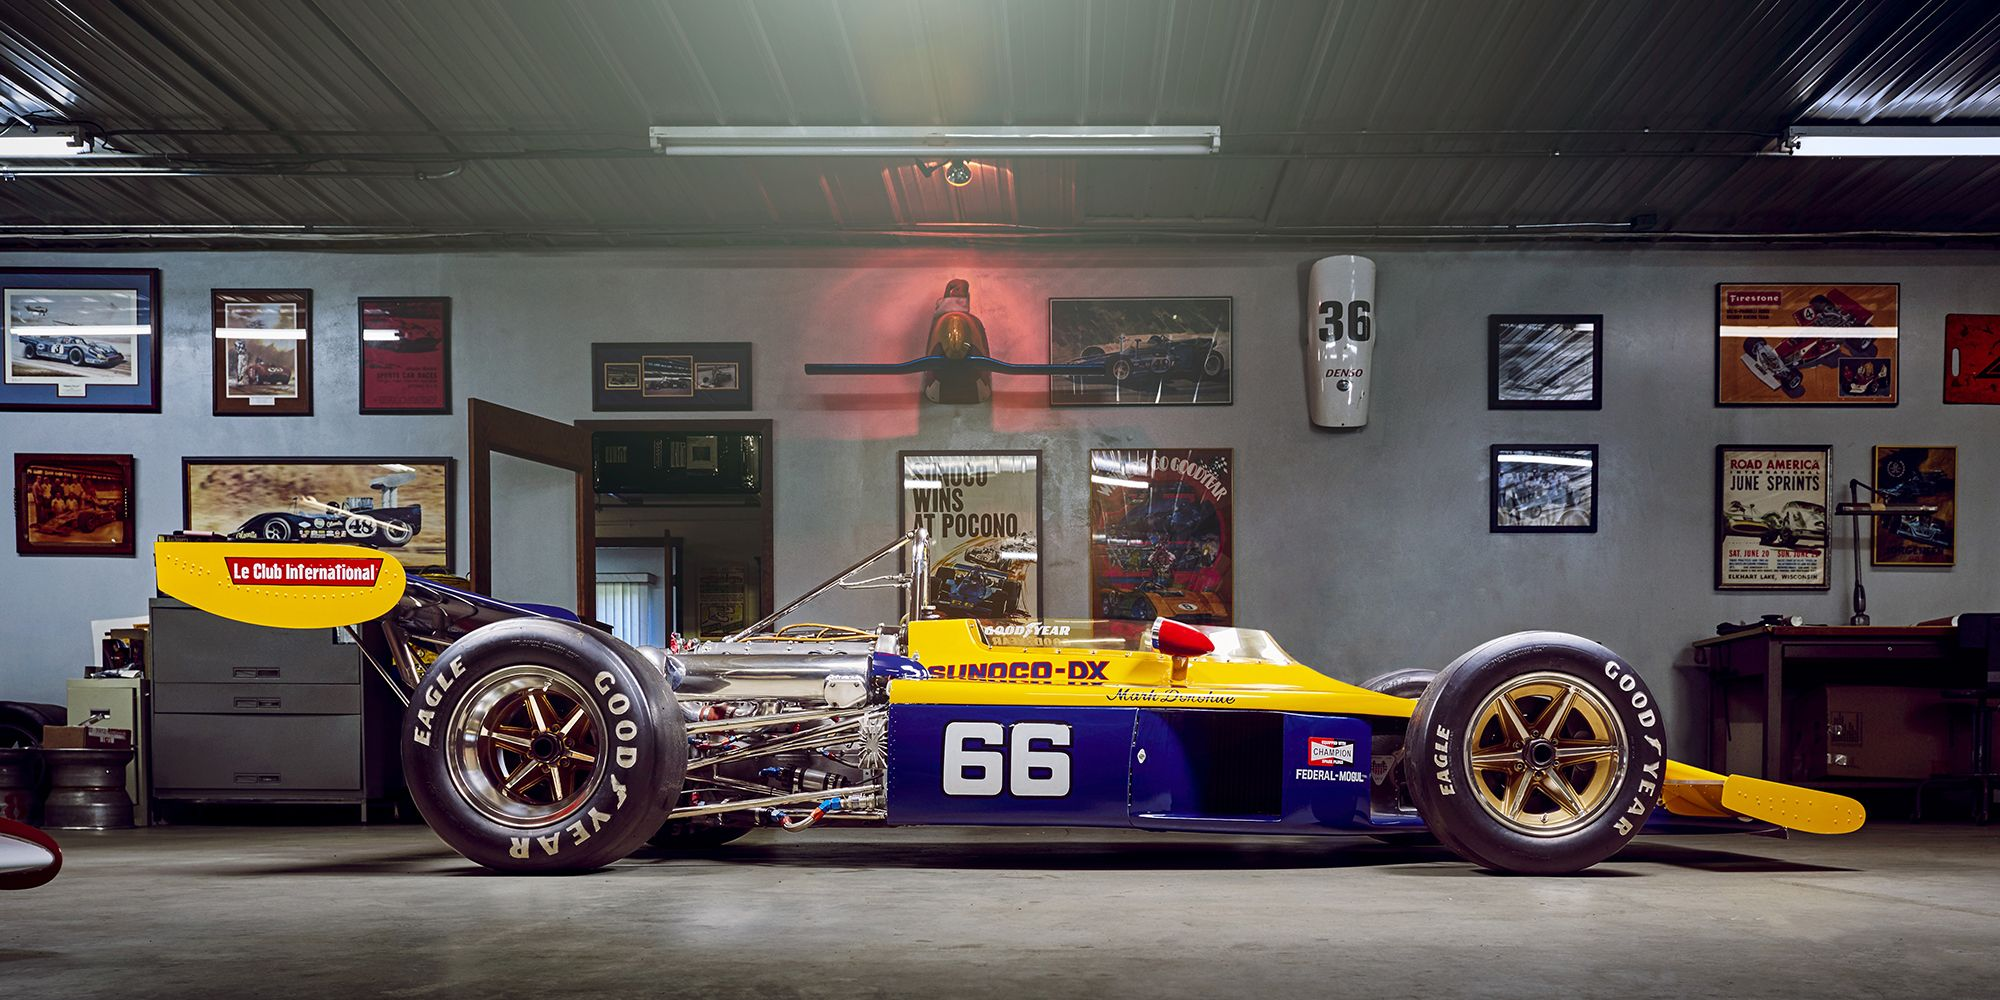 The wisconsin shop that keeps forgotten indy 500 history alive